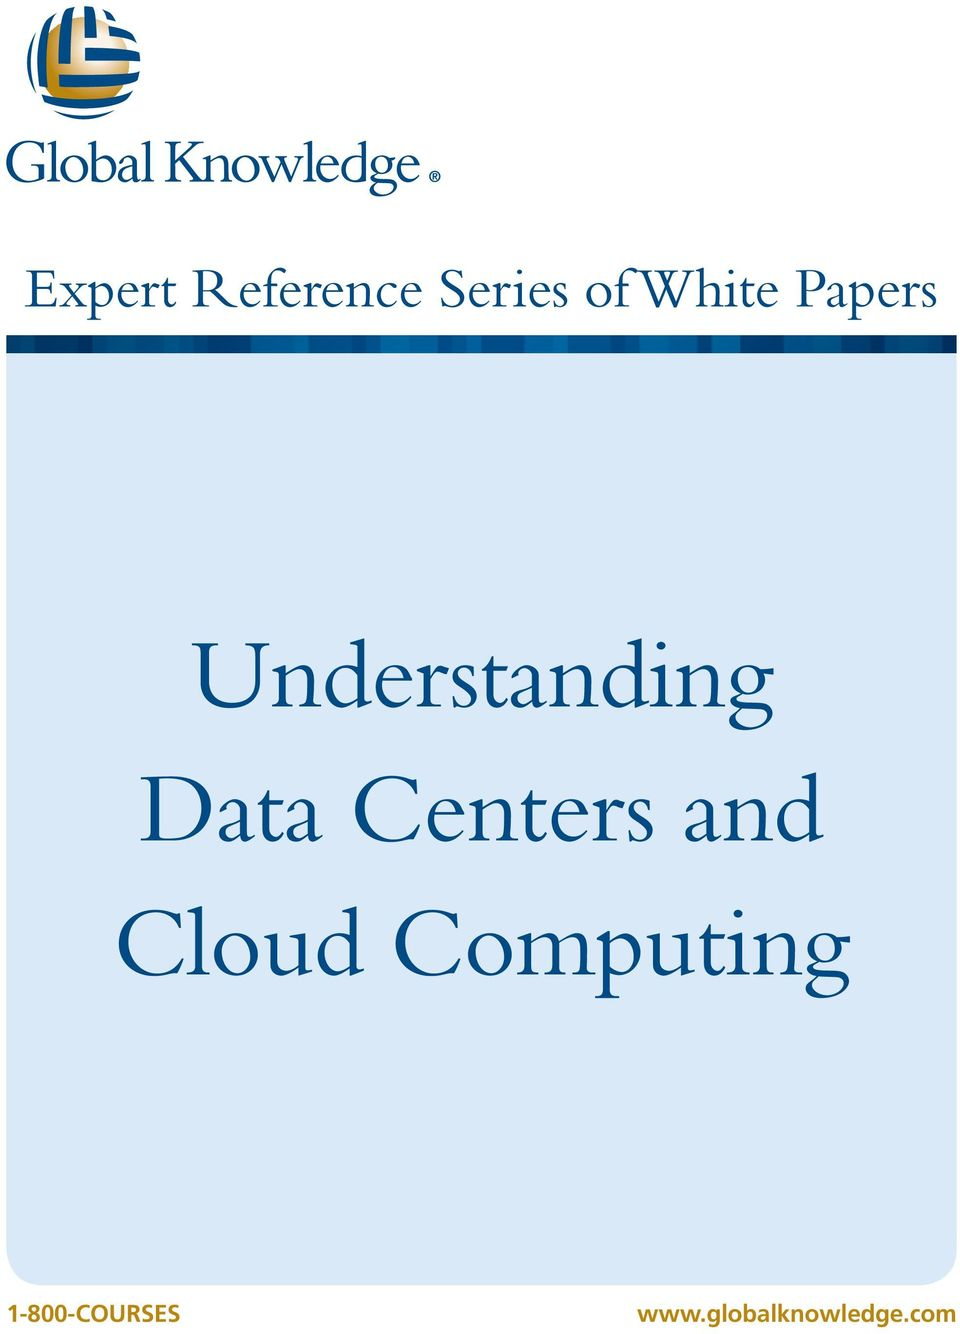 Data Centers and Cloud